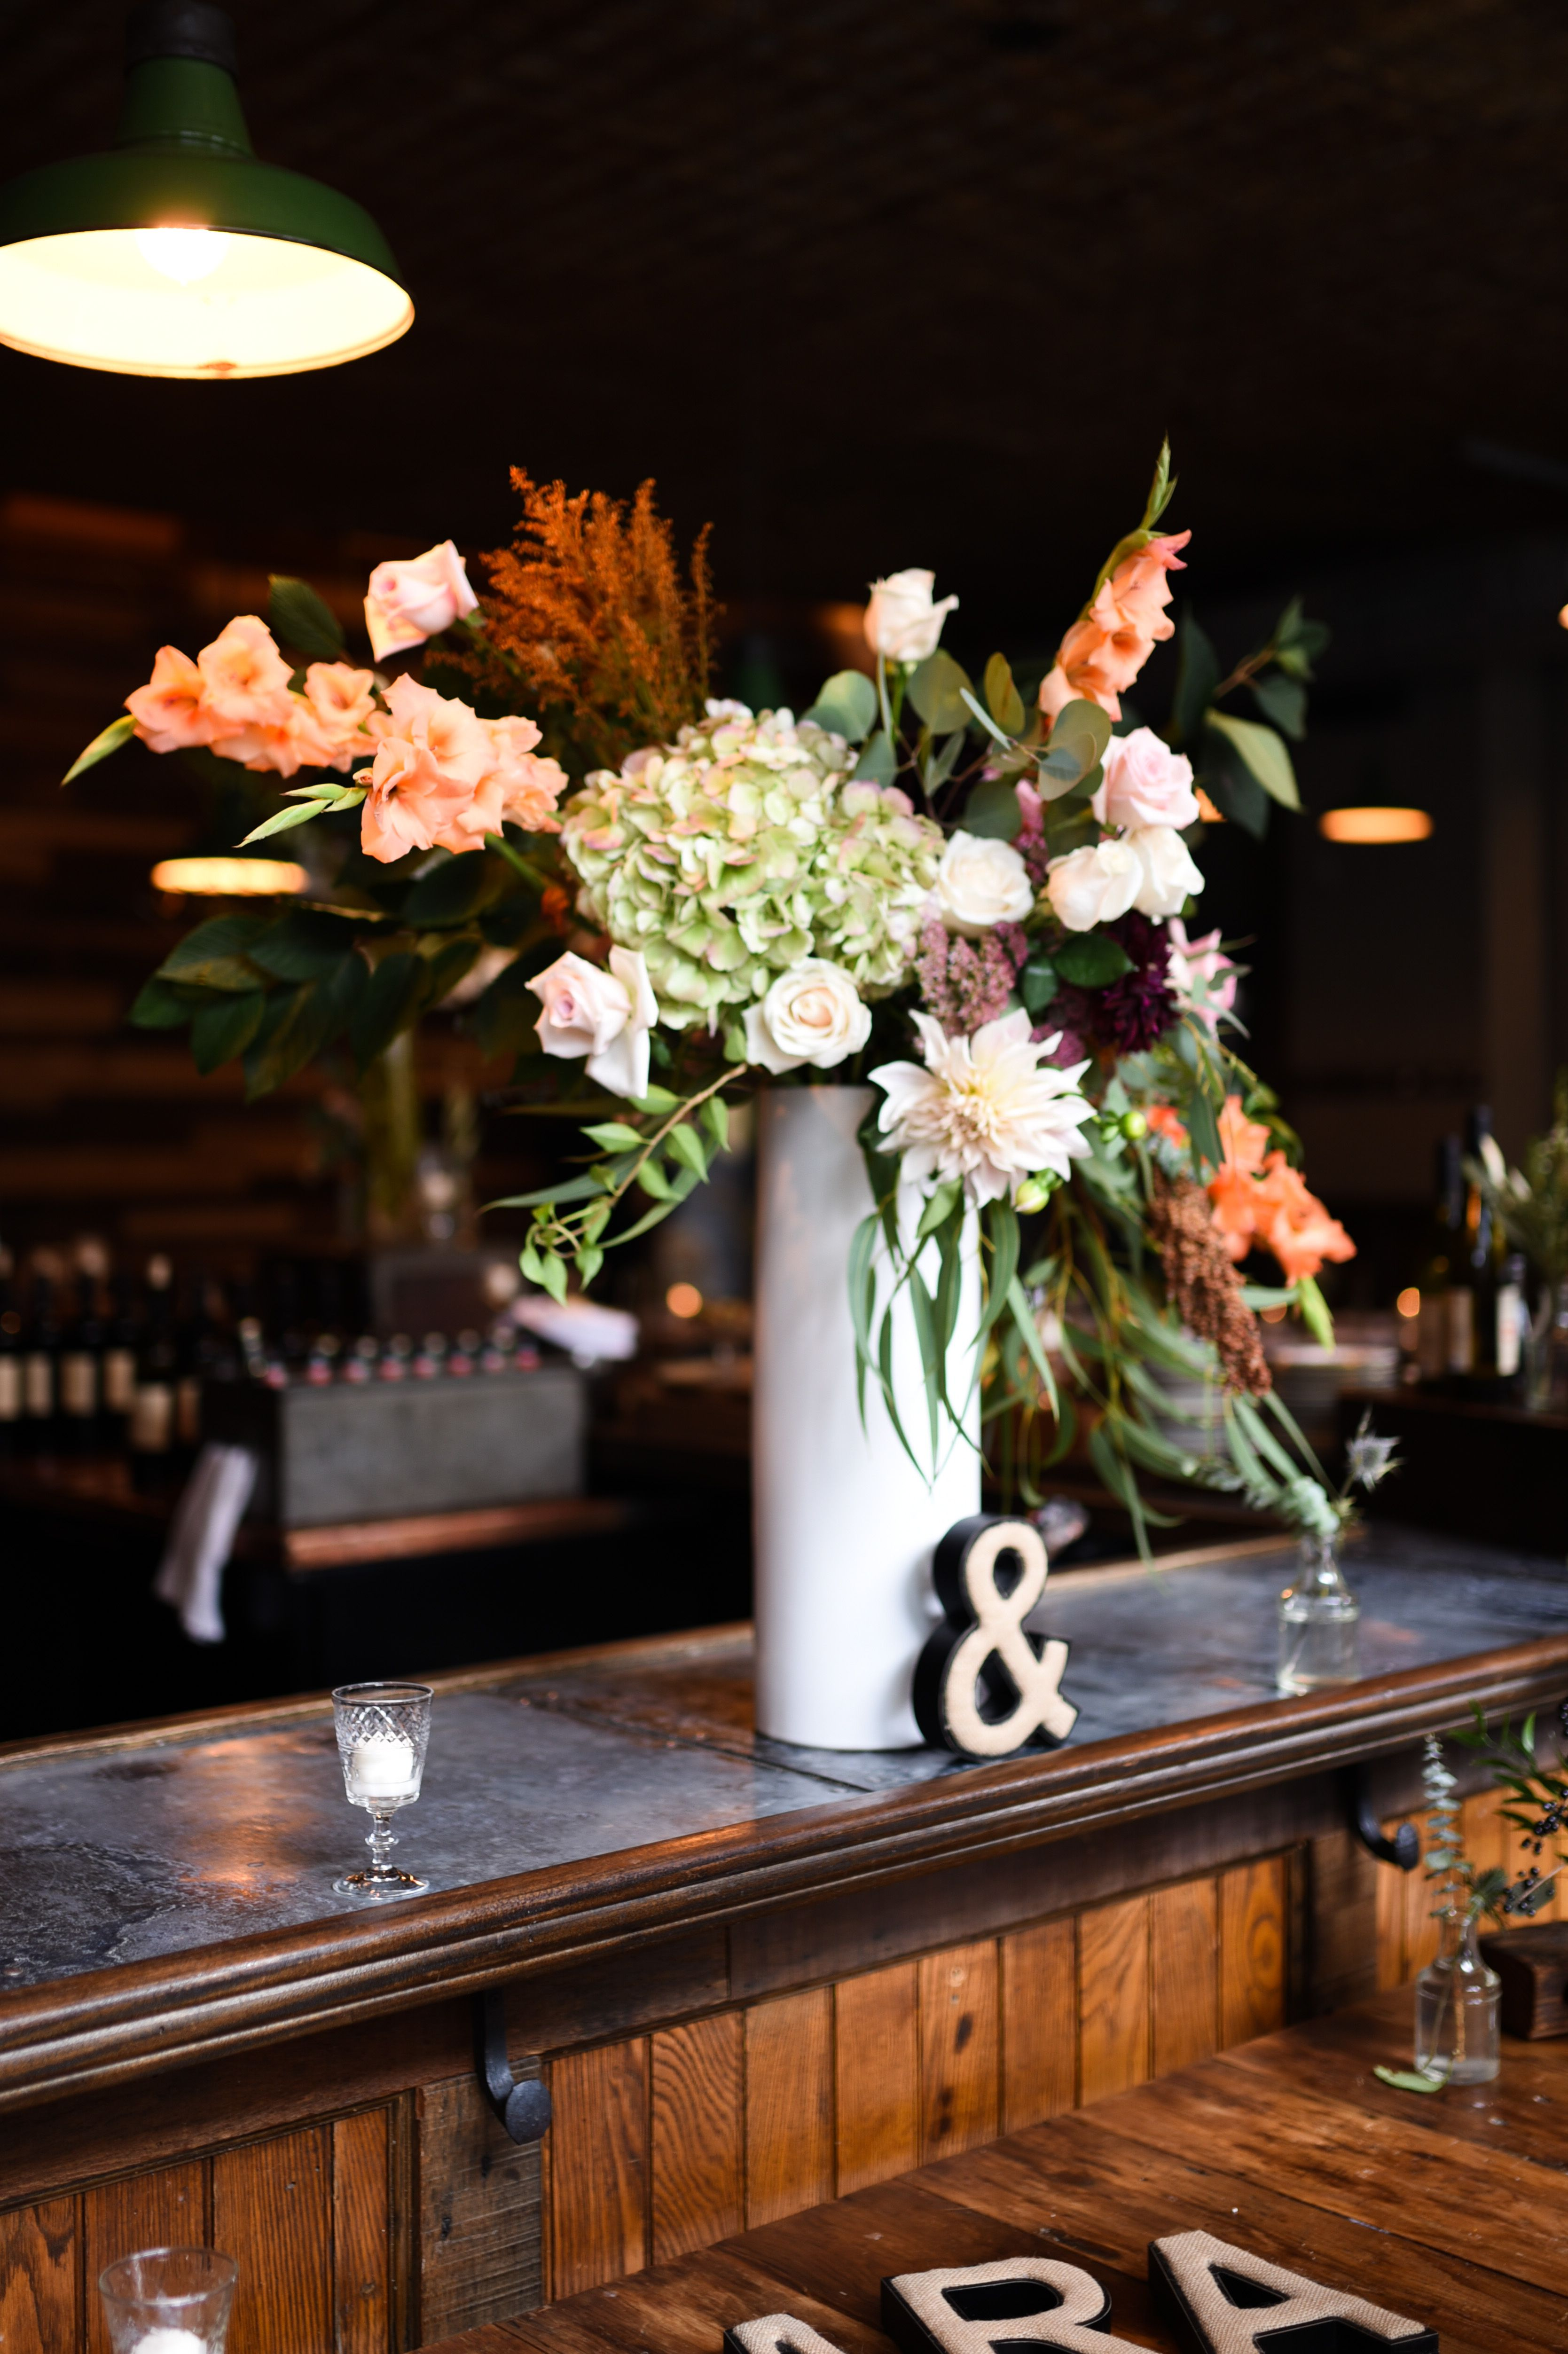 Tall asymmetrical centerpieces featuring pale flowers and